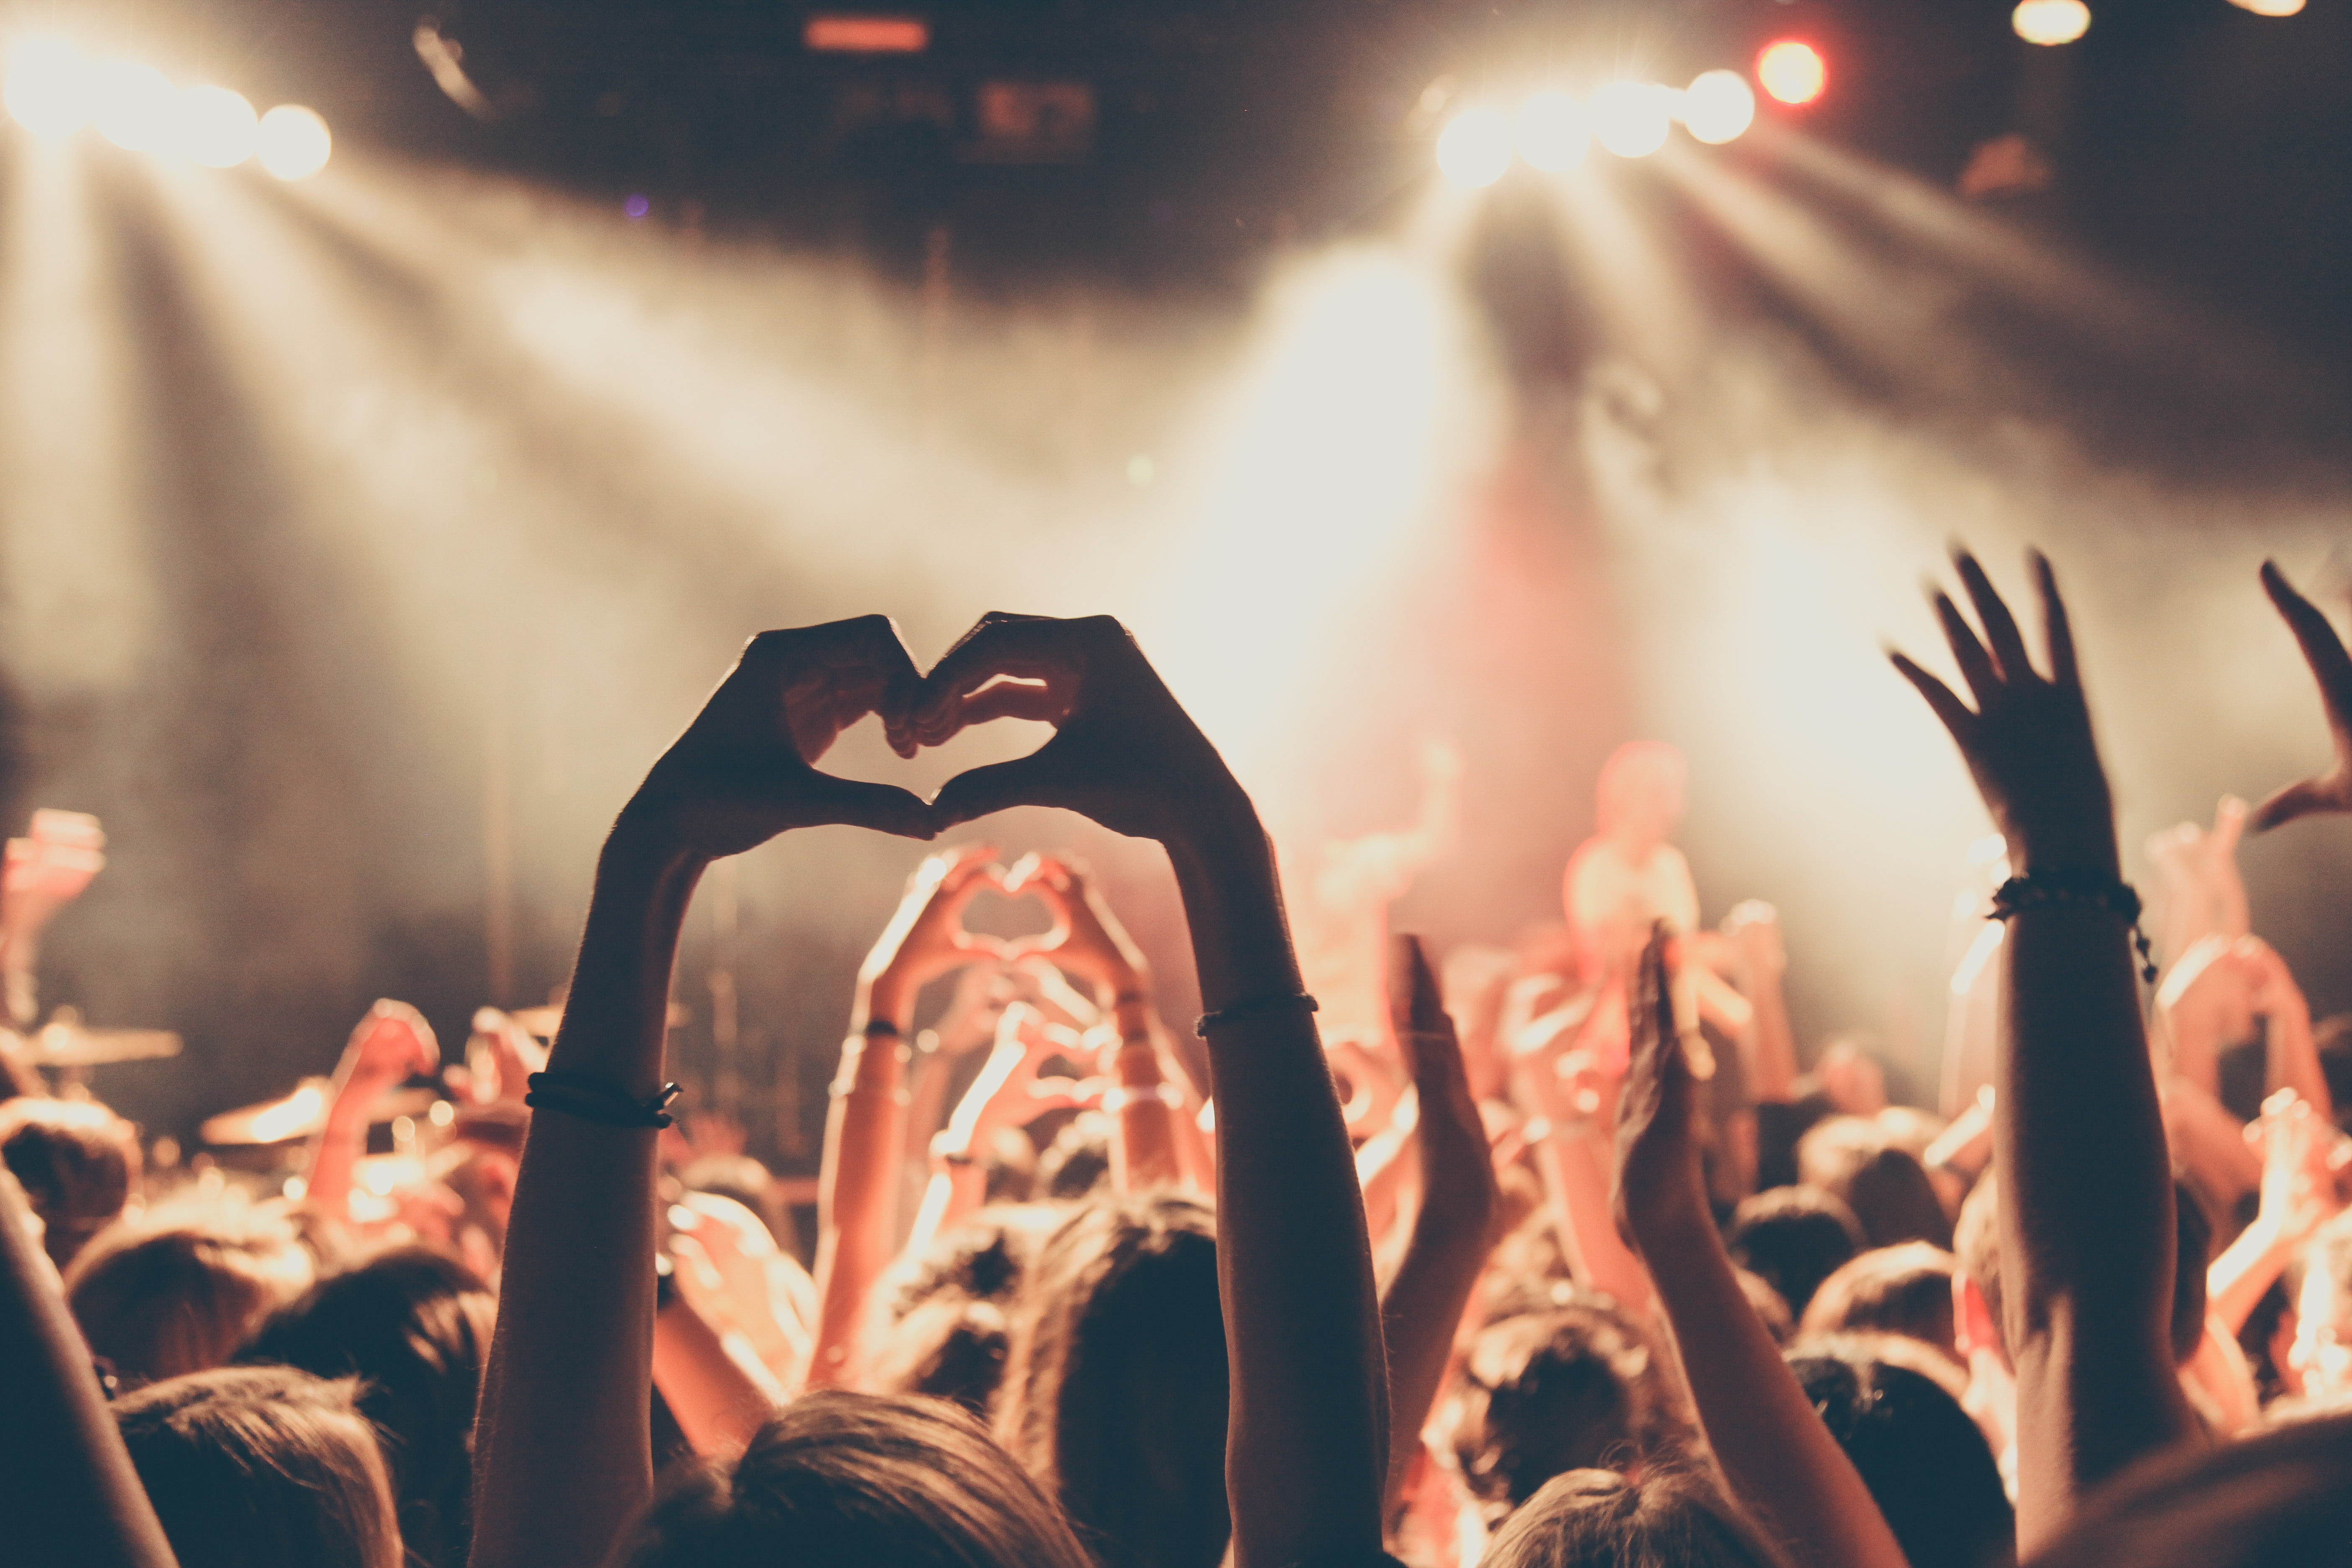 Love for Crowdfunding